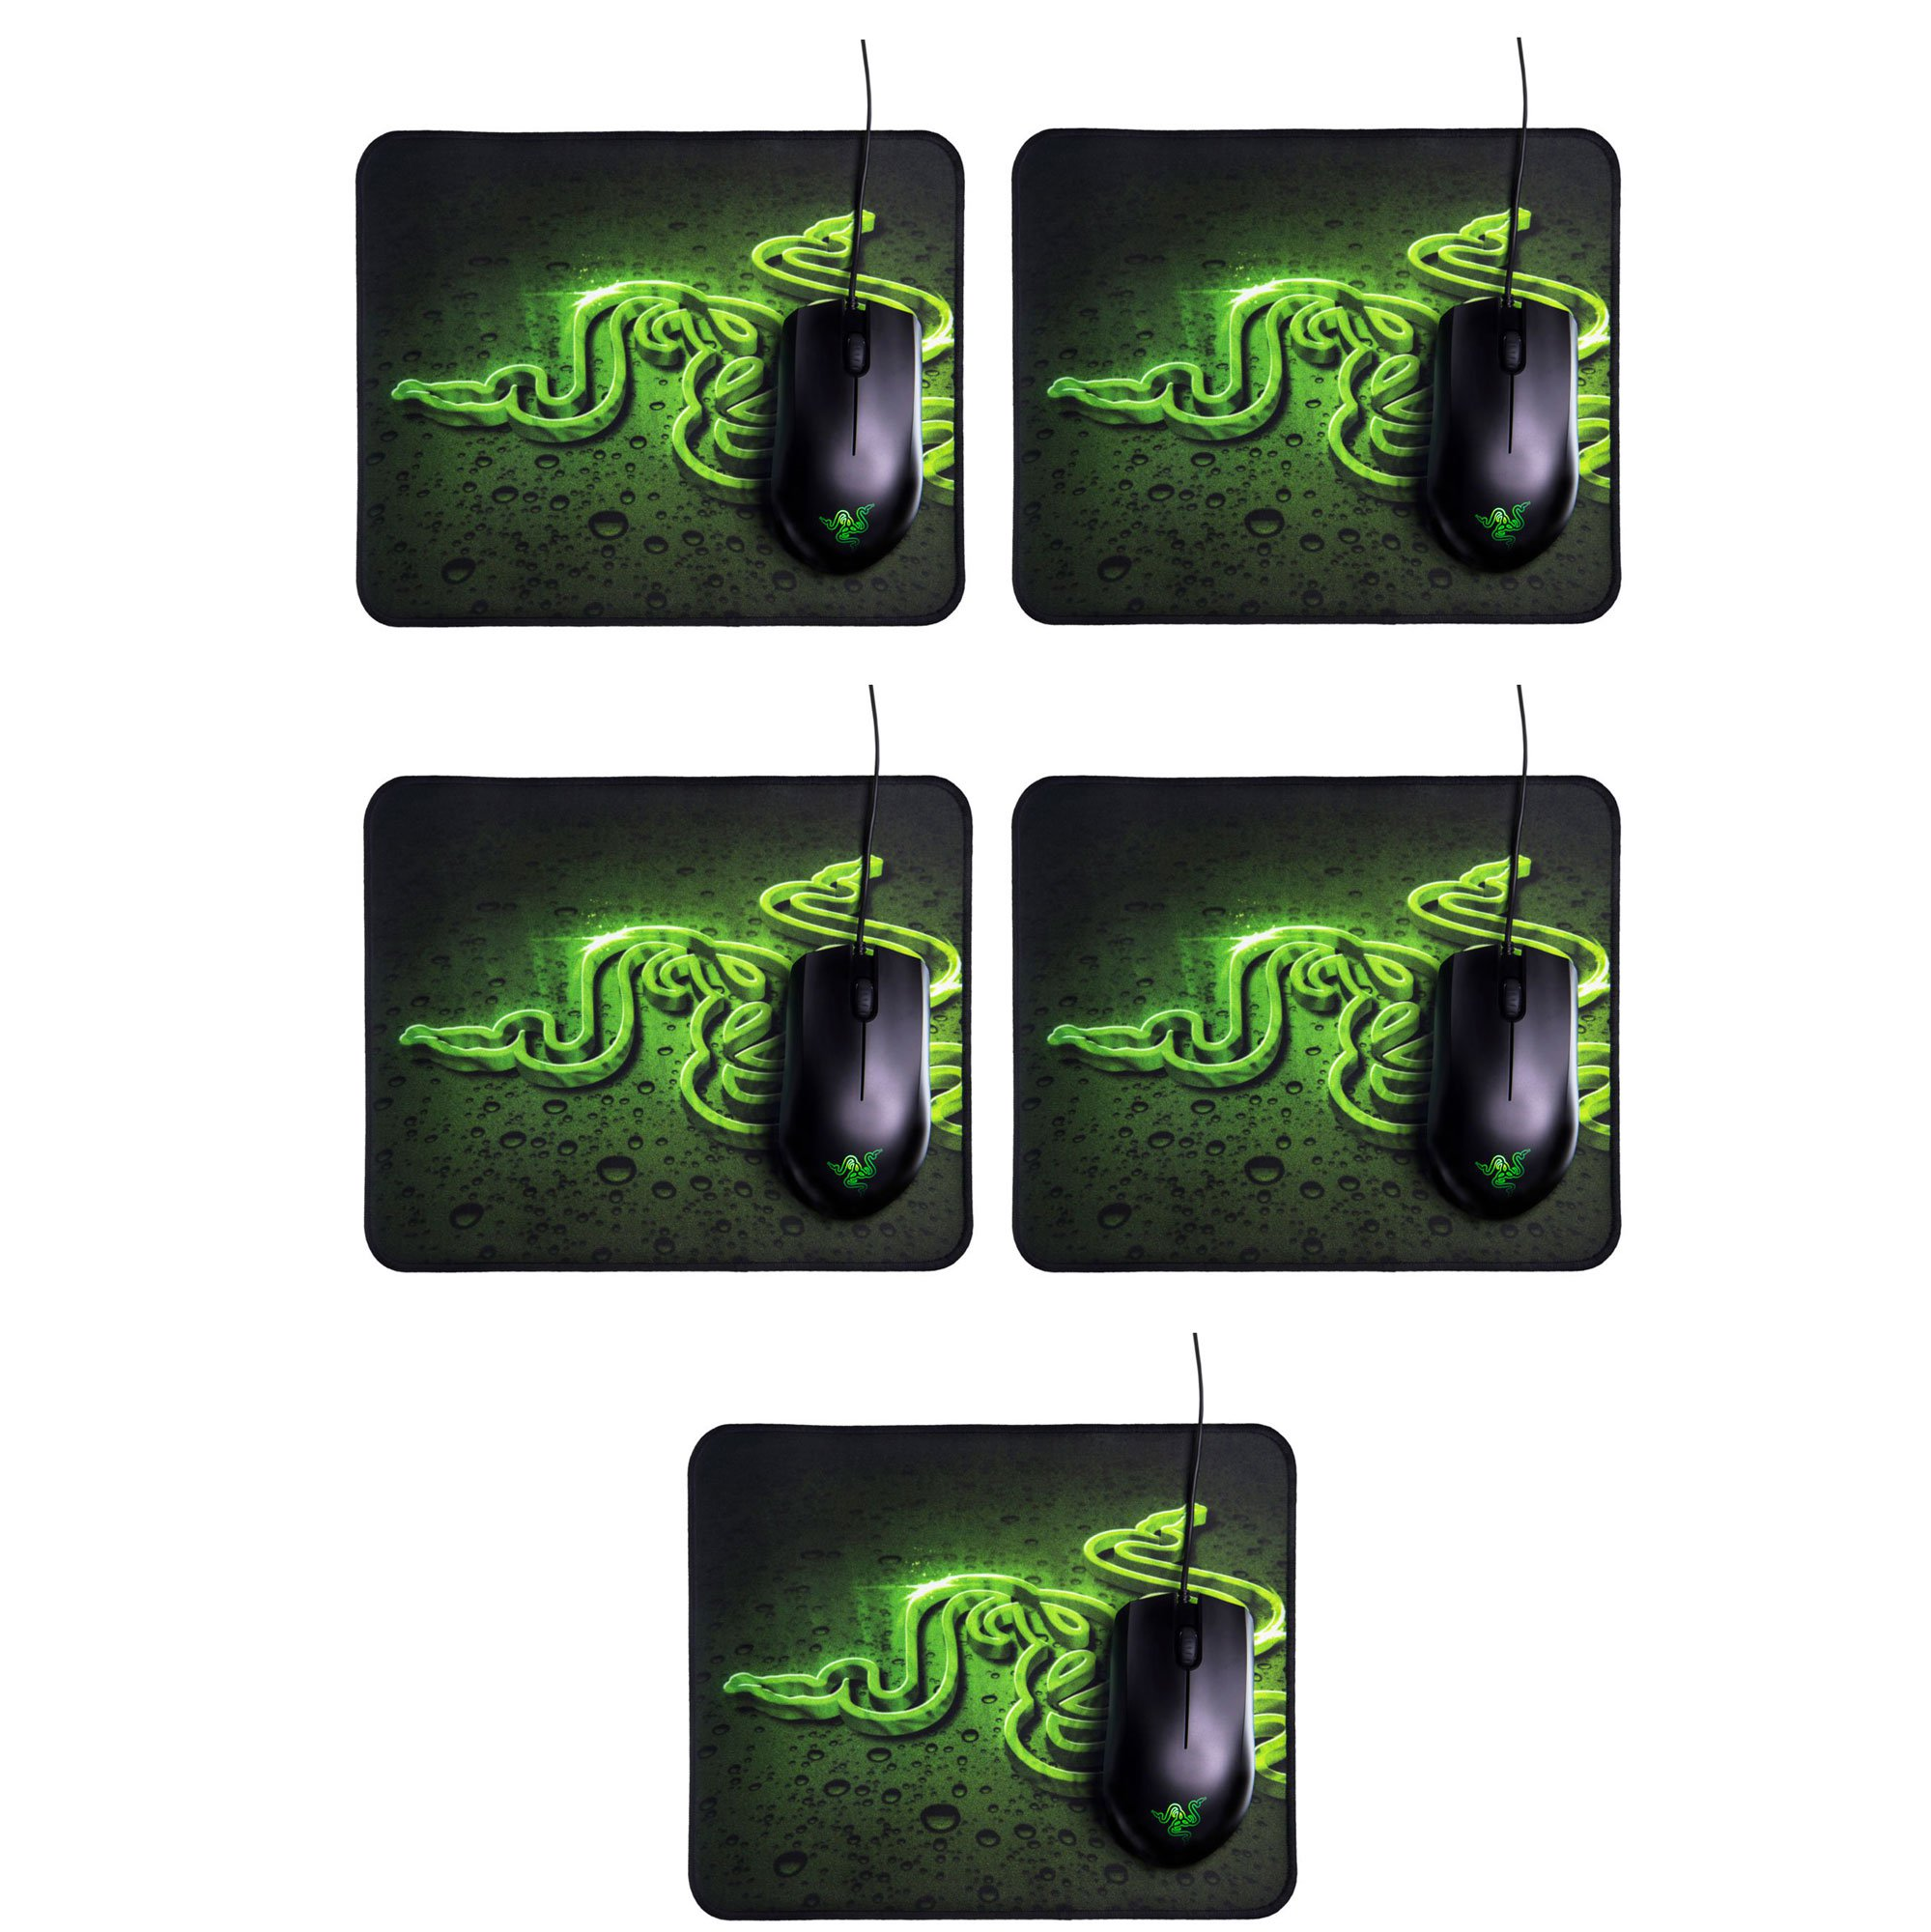 Razer Abyssus 2000 DPI Wired Mouse and Goliathus High Texture Mouse Pad (5 Pack) by Razer